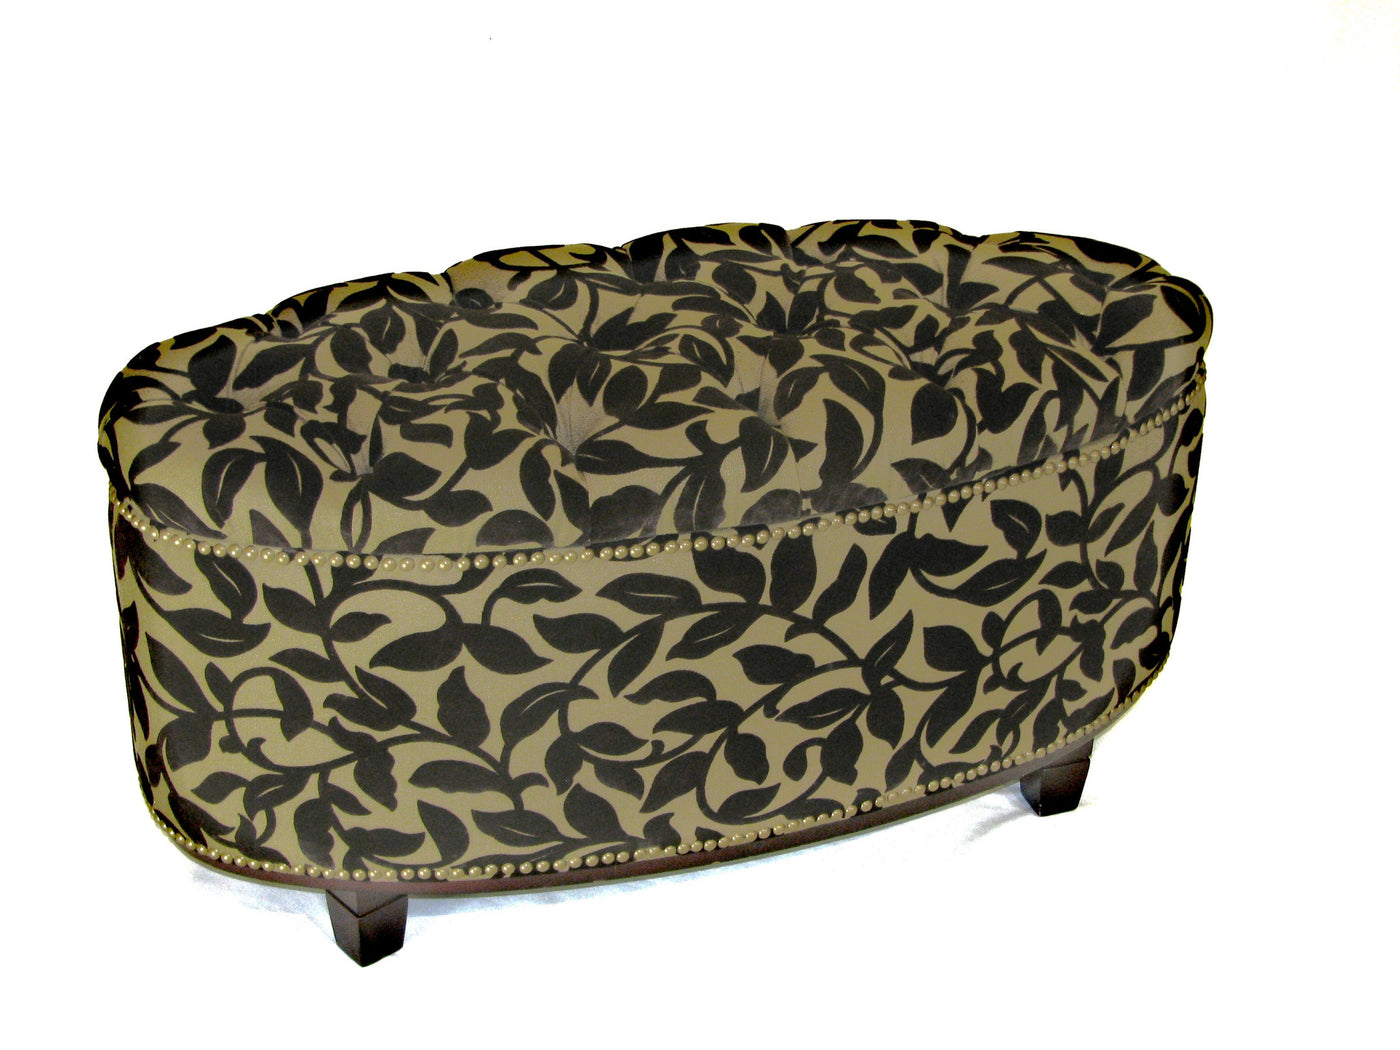 Michael Anthony Furniture Aura Oval Tufted Top Ottoman Bench